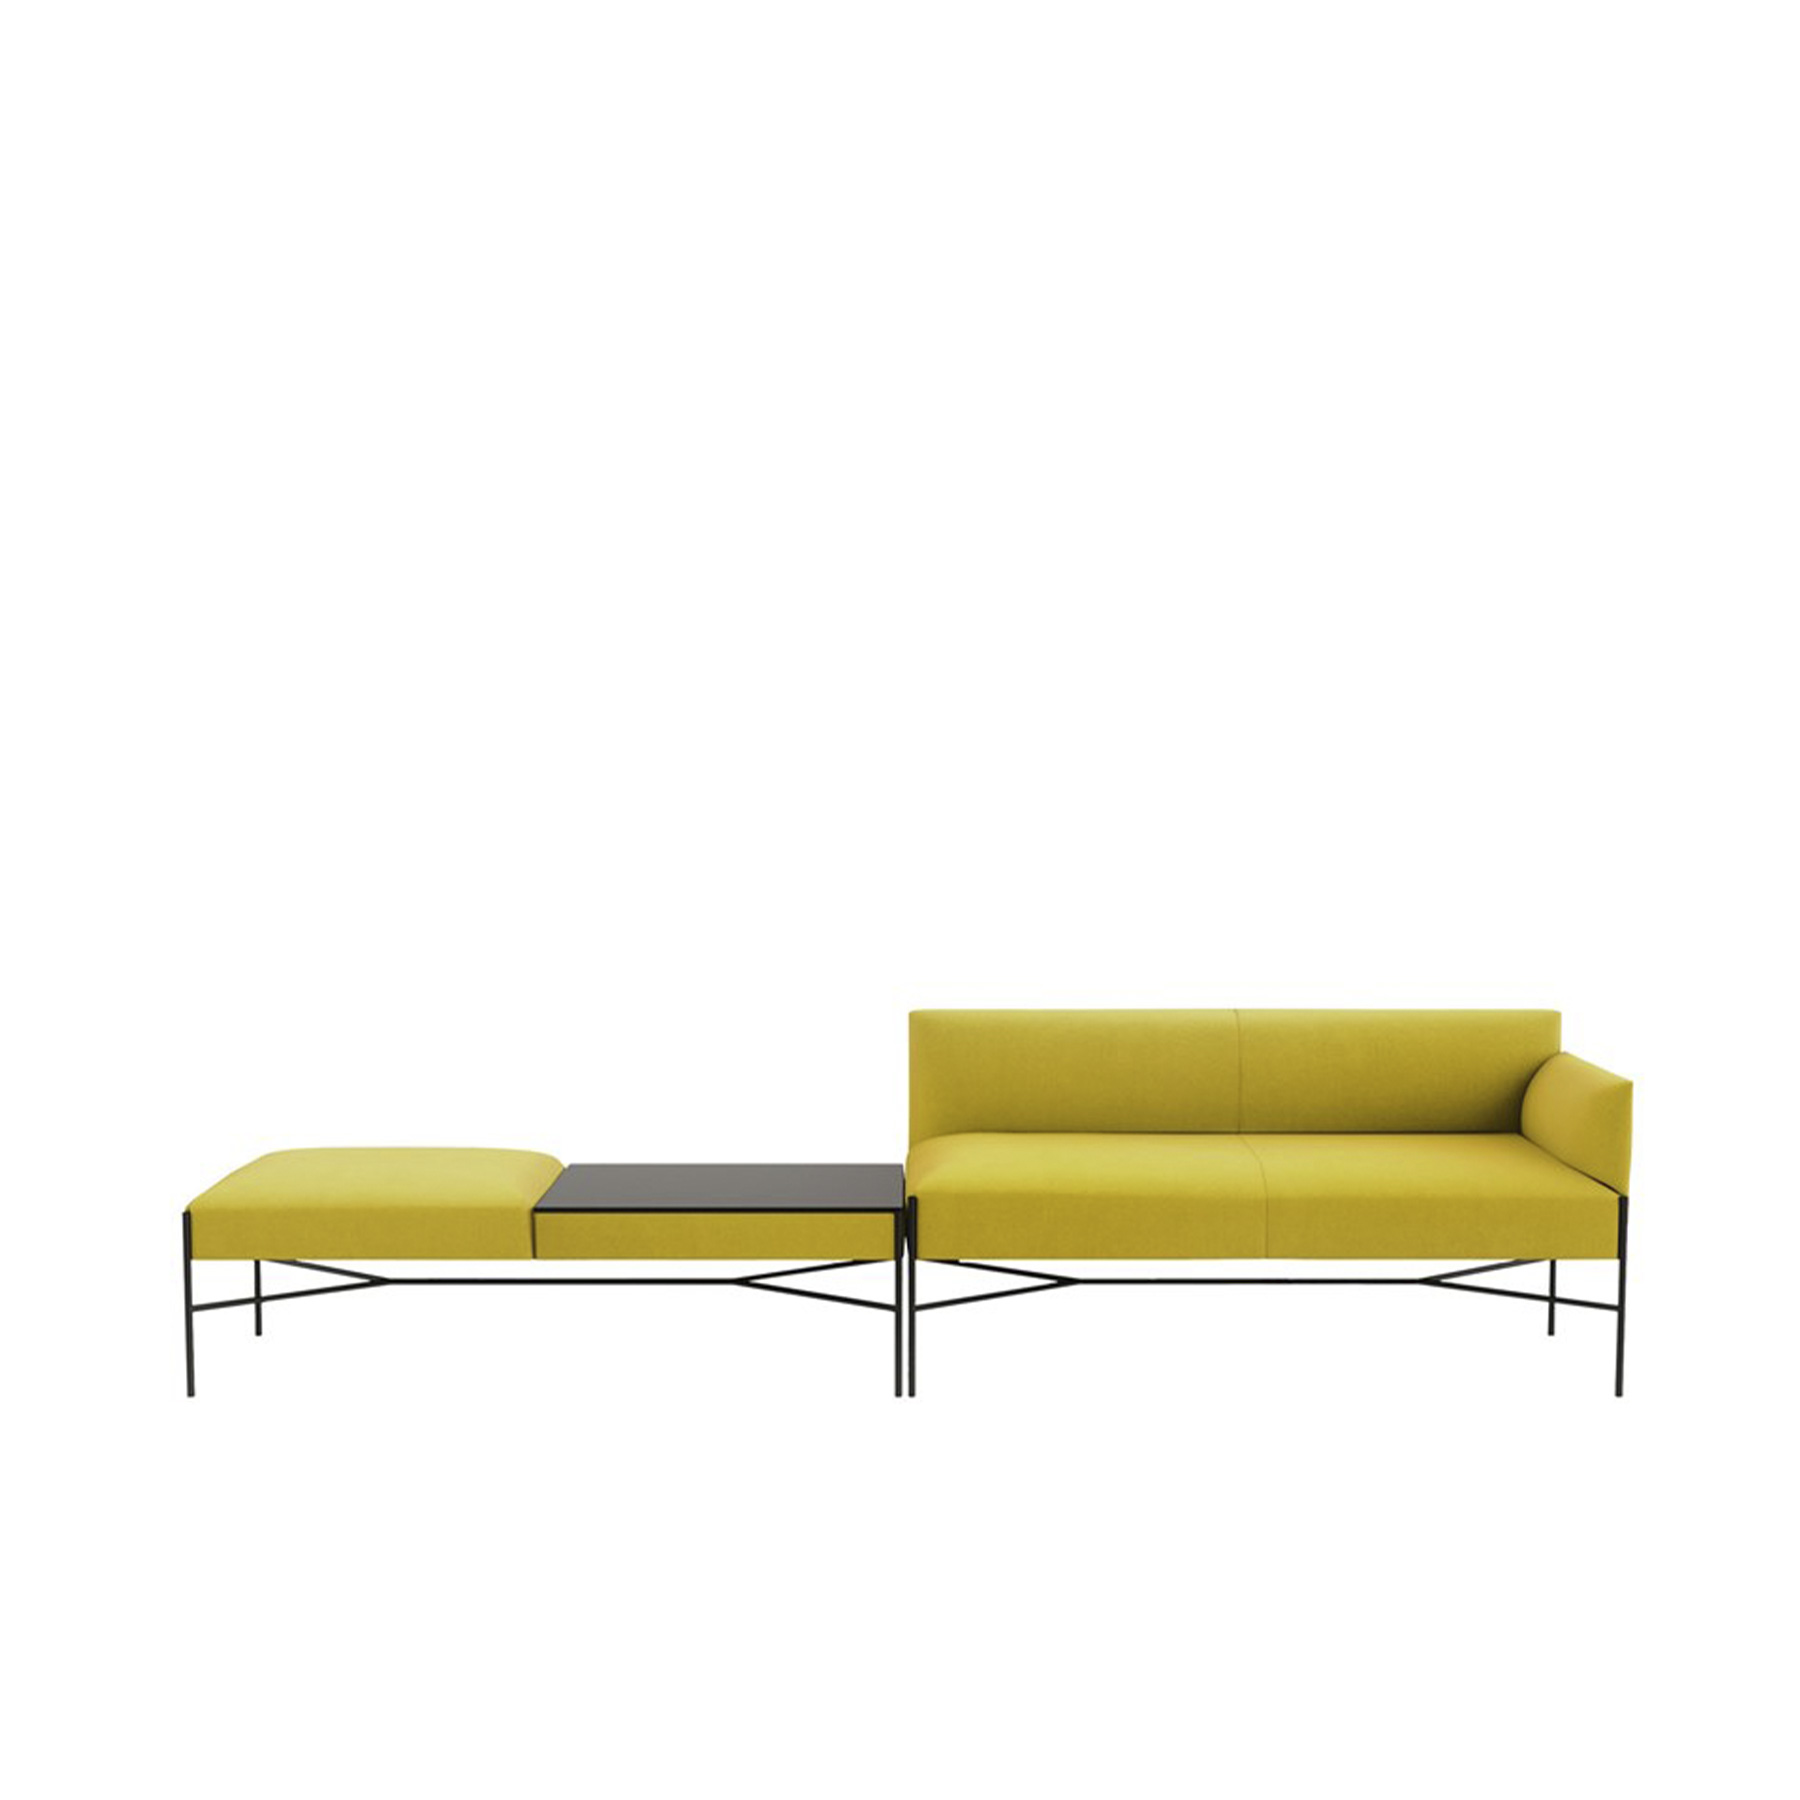 Chill-Out Sectional Sofa - Chill-Out is a system of sofas and armchairs that can stand alone or create a vast range of different linear or corner compositions. It features a light, slim base and cosy, comfortable cushioning, to which back and armrests can be added. An ideal combination both for domestic and collective spaces, particularly in the version with a built-in coffee table.  Gordon Guillaumier introduces his new project. Chill-Out is a modular system of sofas, armchairs, ottomans or small tables which express a long searched simplicity, a precision that is harmony and wellness, a modularity becomes total freedom of composition and setting of spaces. Chill-out system has been designed for both habitat and public spaces. It can be a single element or a modular composition with various shapes and dimensions. The thin and elegant proportions express lightness with its light, metallic base supporting the simple, clean and comfortable volumes. Sofas, armchairs and benches can be integrated with small square and rectangular tables realized in white Carrara or Basaltina marble always in mat fi nish. The metal frame is available in satin chrome or epoxy coated versions. Chill-Out as all our models of our collection is obtained from the value of materials used, the high skills of our workmanship and the freshness of our realization that cross the time.  This item is available in various sizes and combinations. Please enquire for more information and prices. | Matter of Stuff